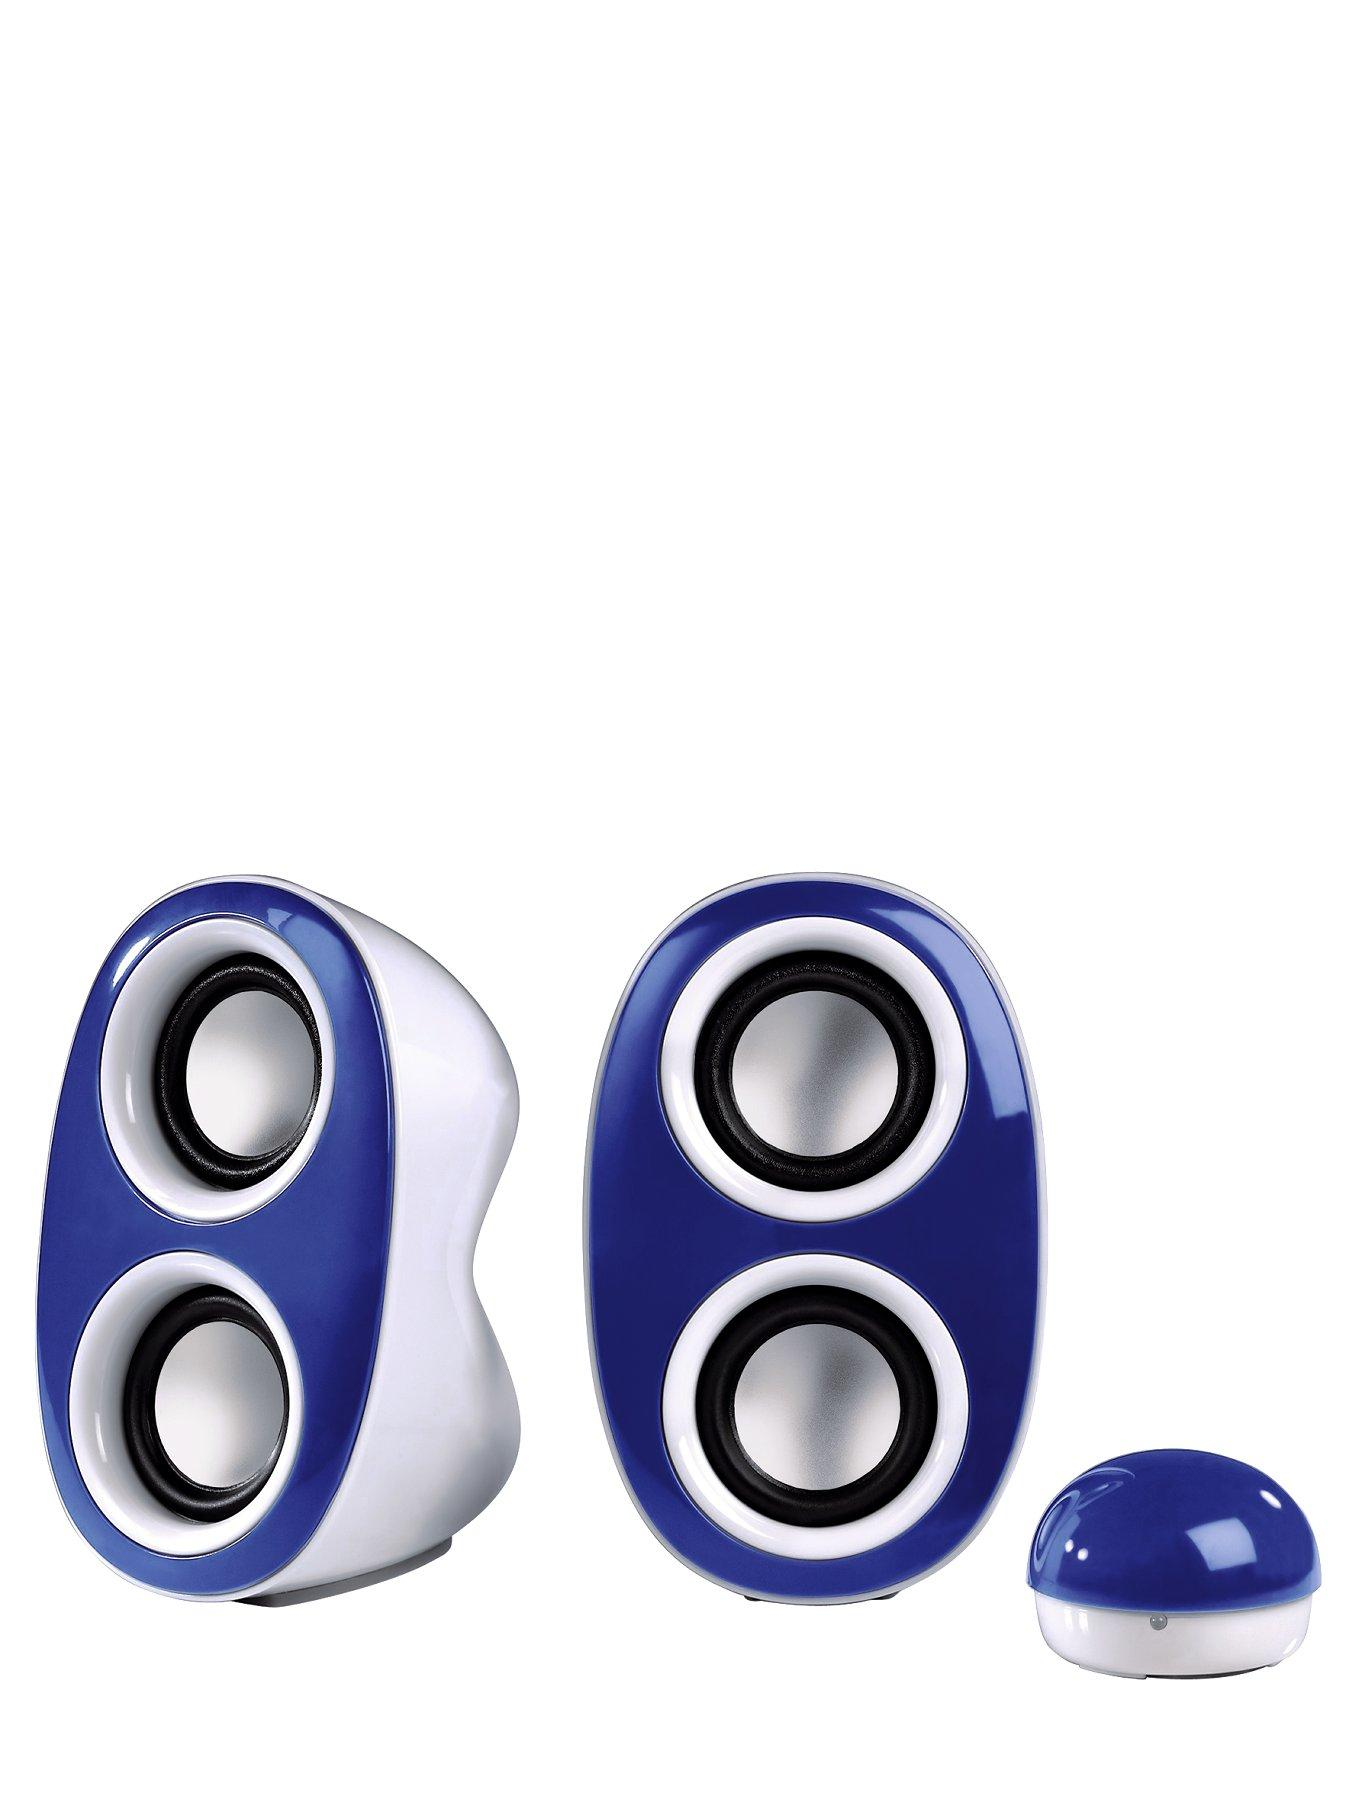 Dispersion Portable PC Speakers - Blue